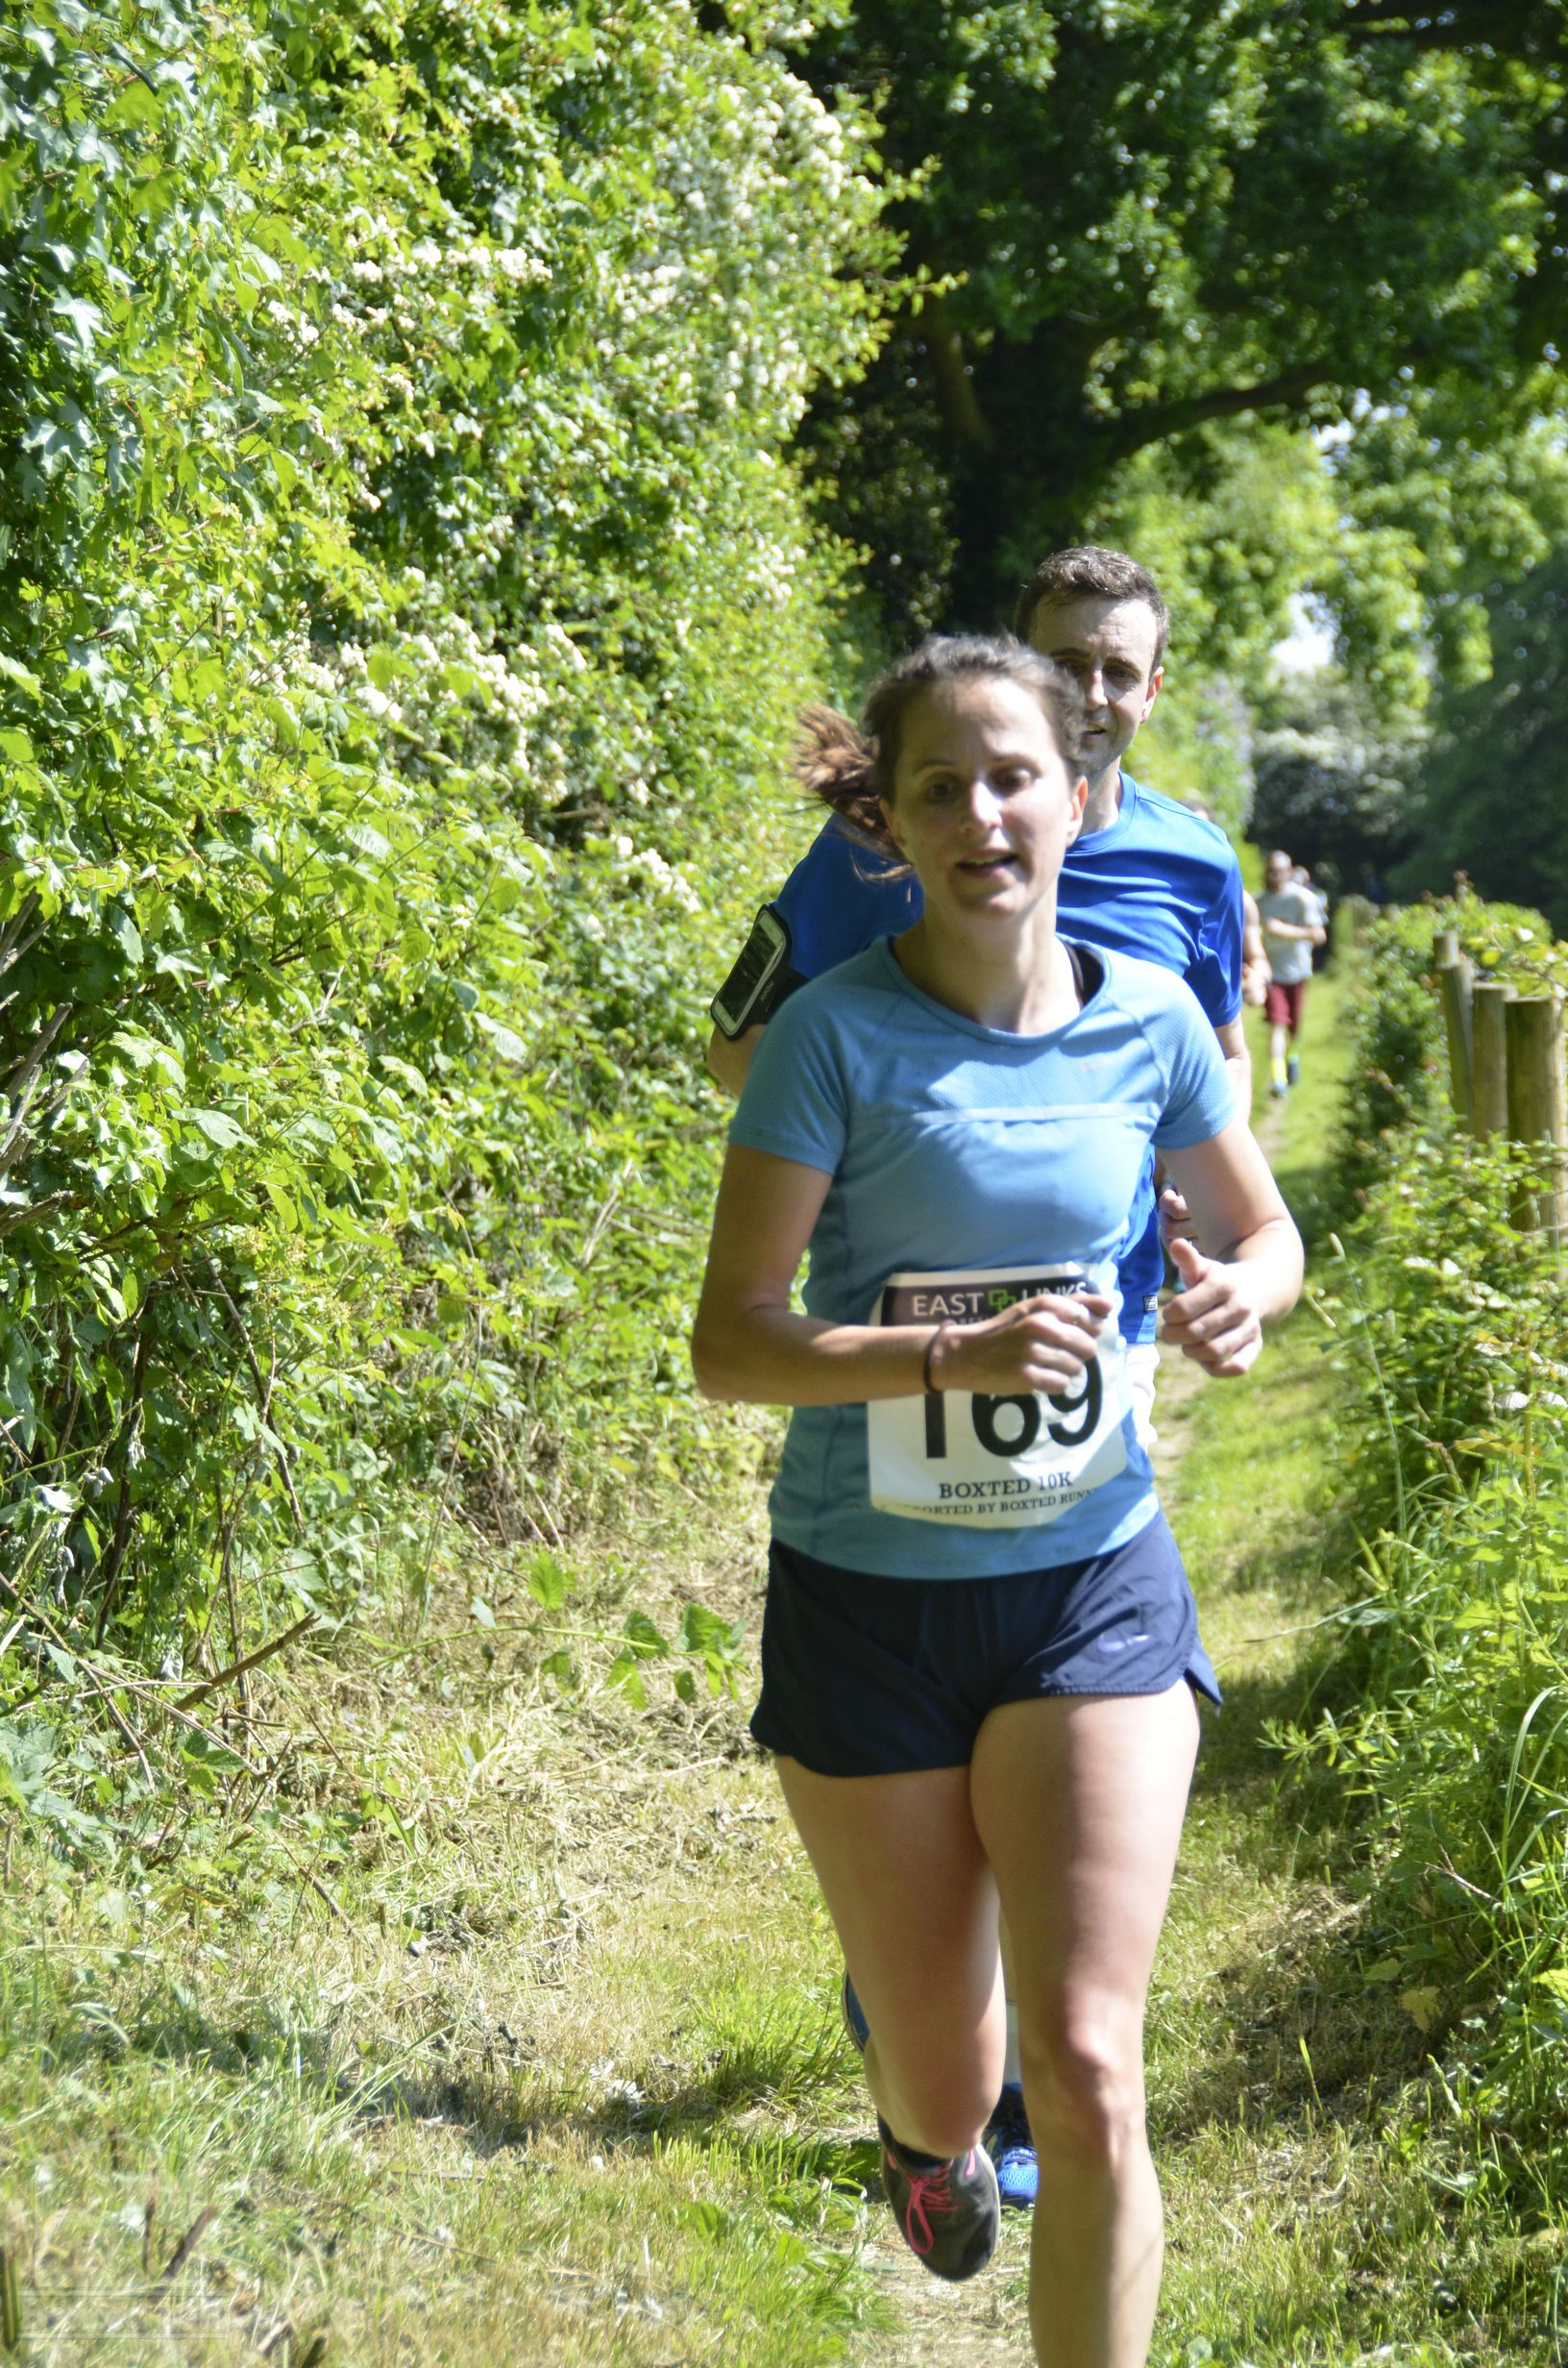 Boxted10k-00193